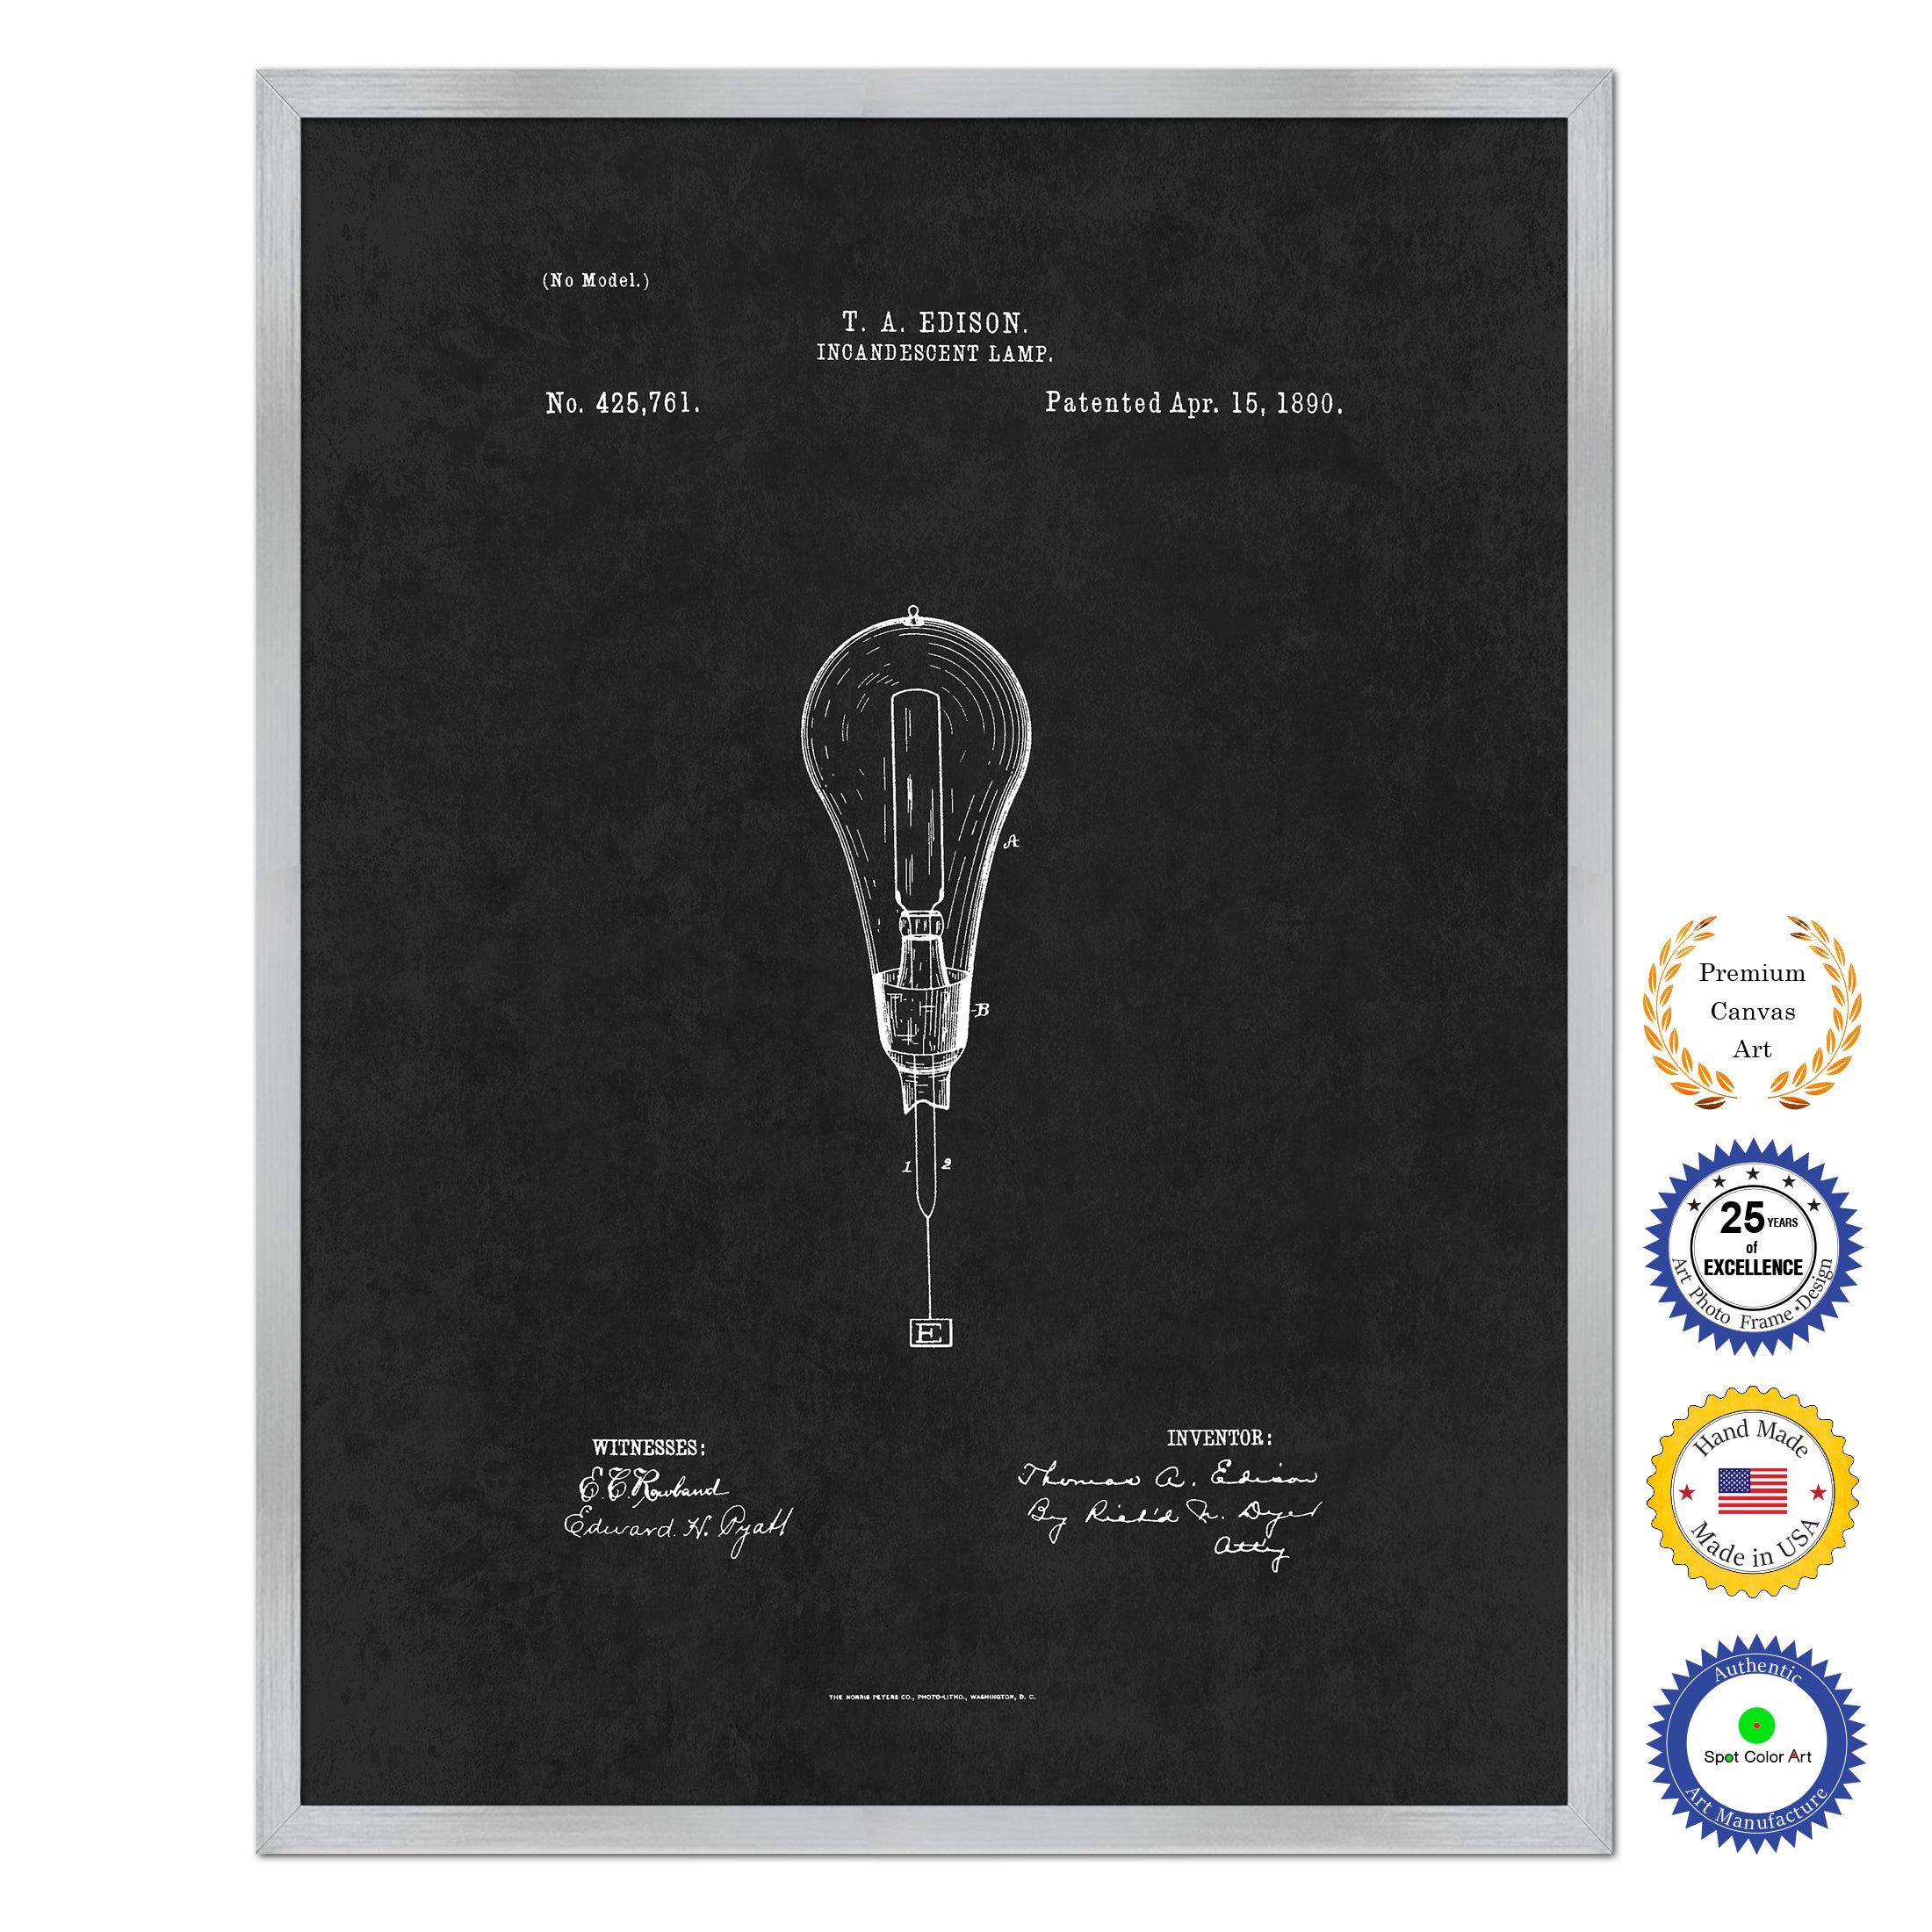 1890 Thomas Edison Incandescent Lamp Antique Patent Artwork Silver Framed Canvas Home Office Decor Great for Thomas Edison Lover Electrician Inventor